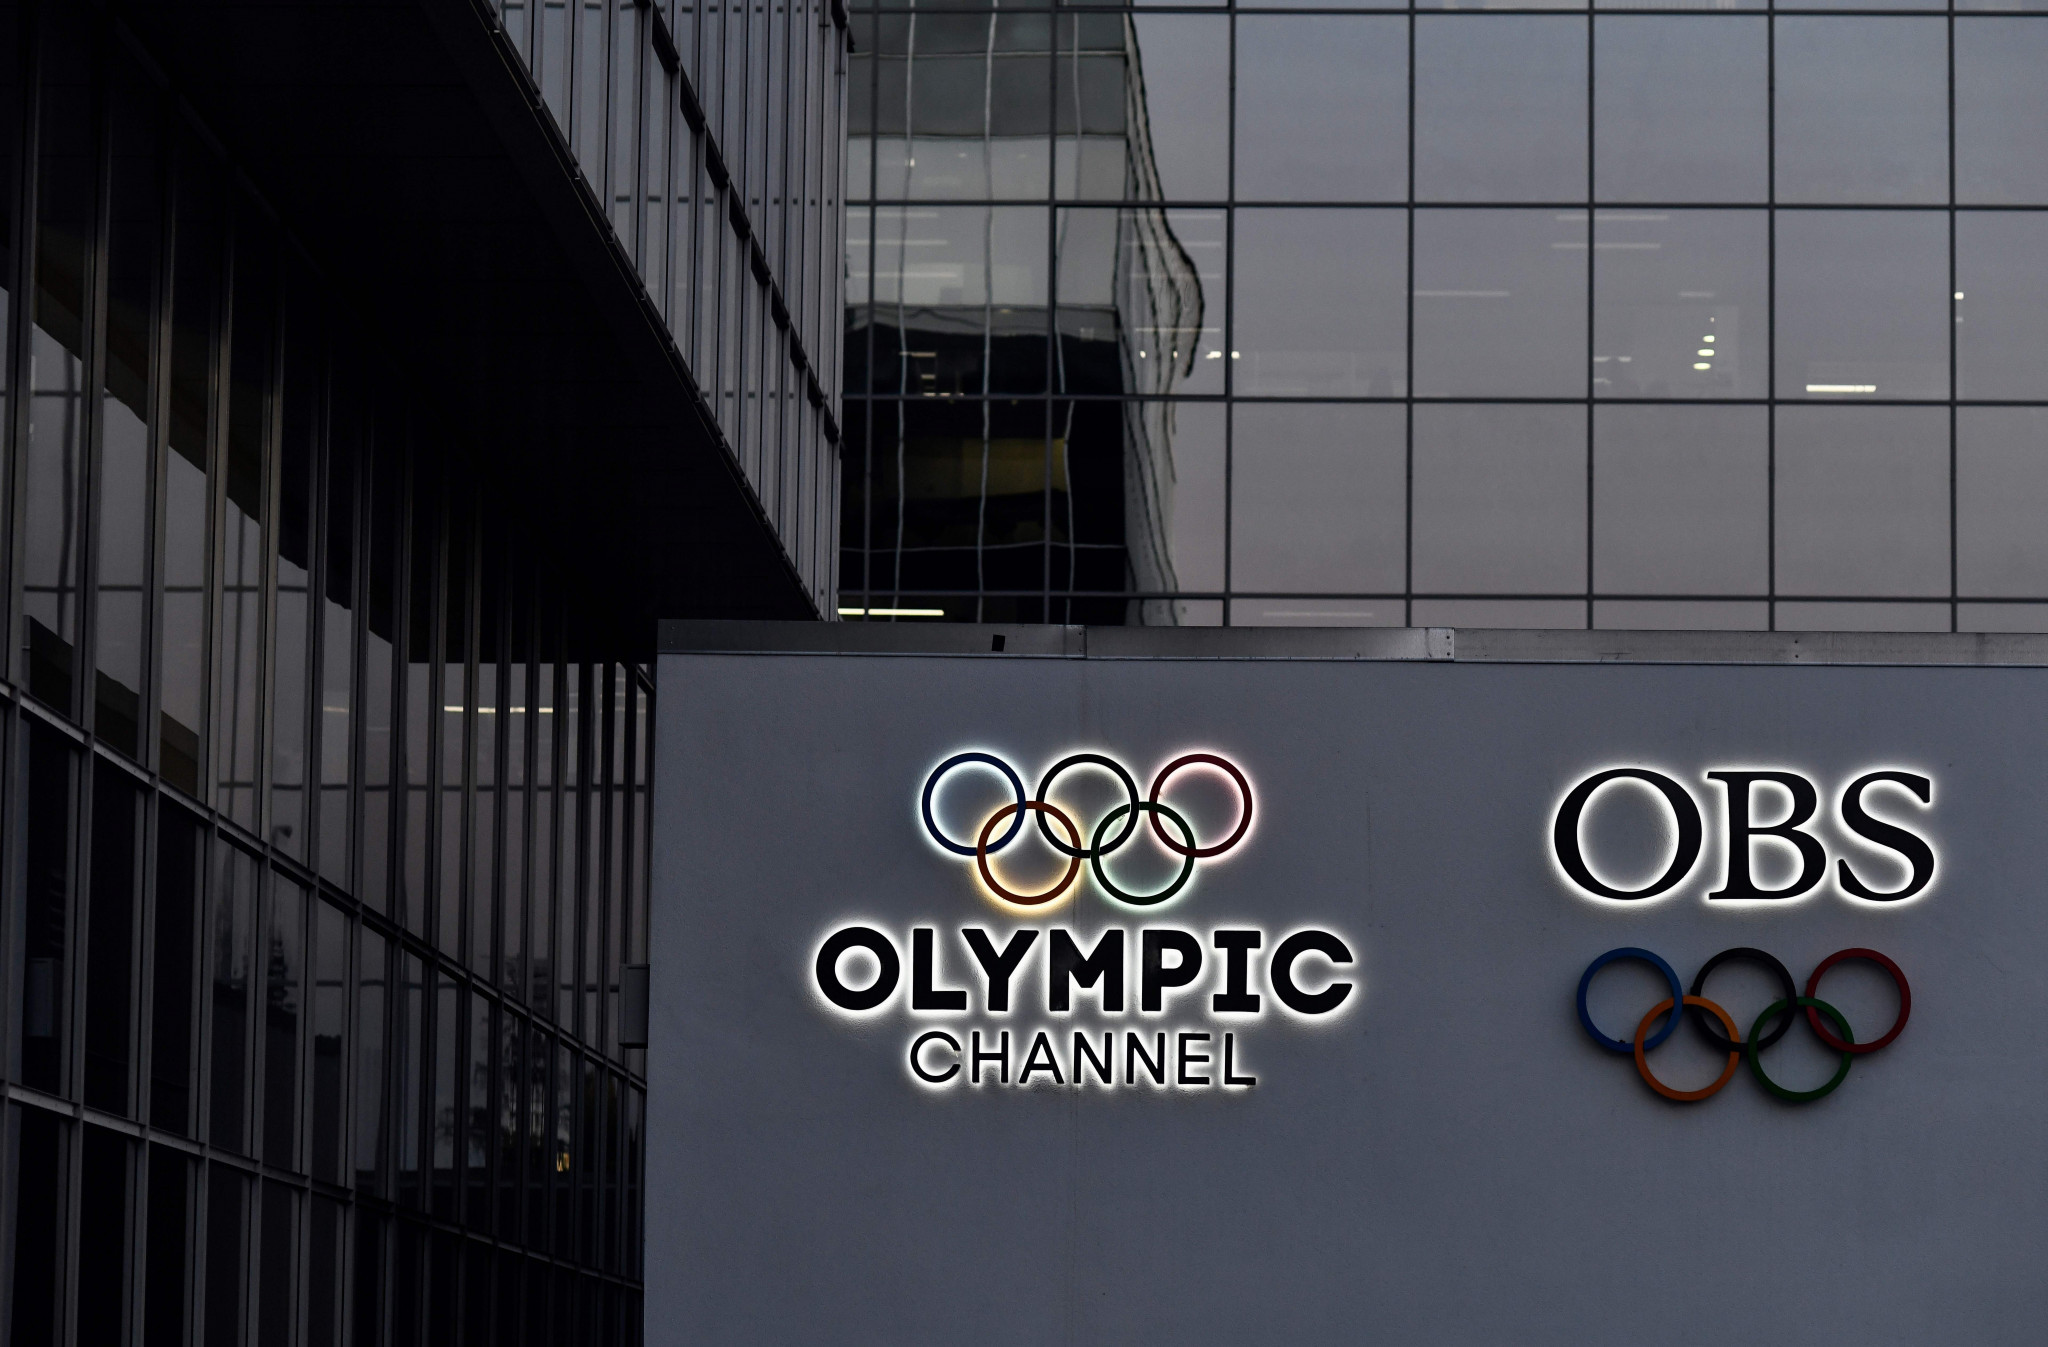 Olympic Channel axes communications and public relations team as part of restructuring